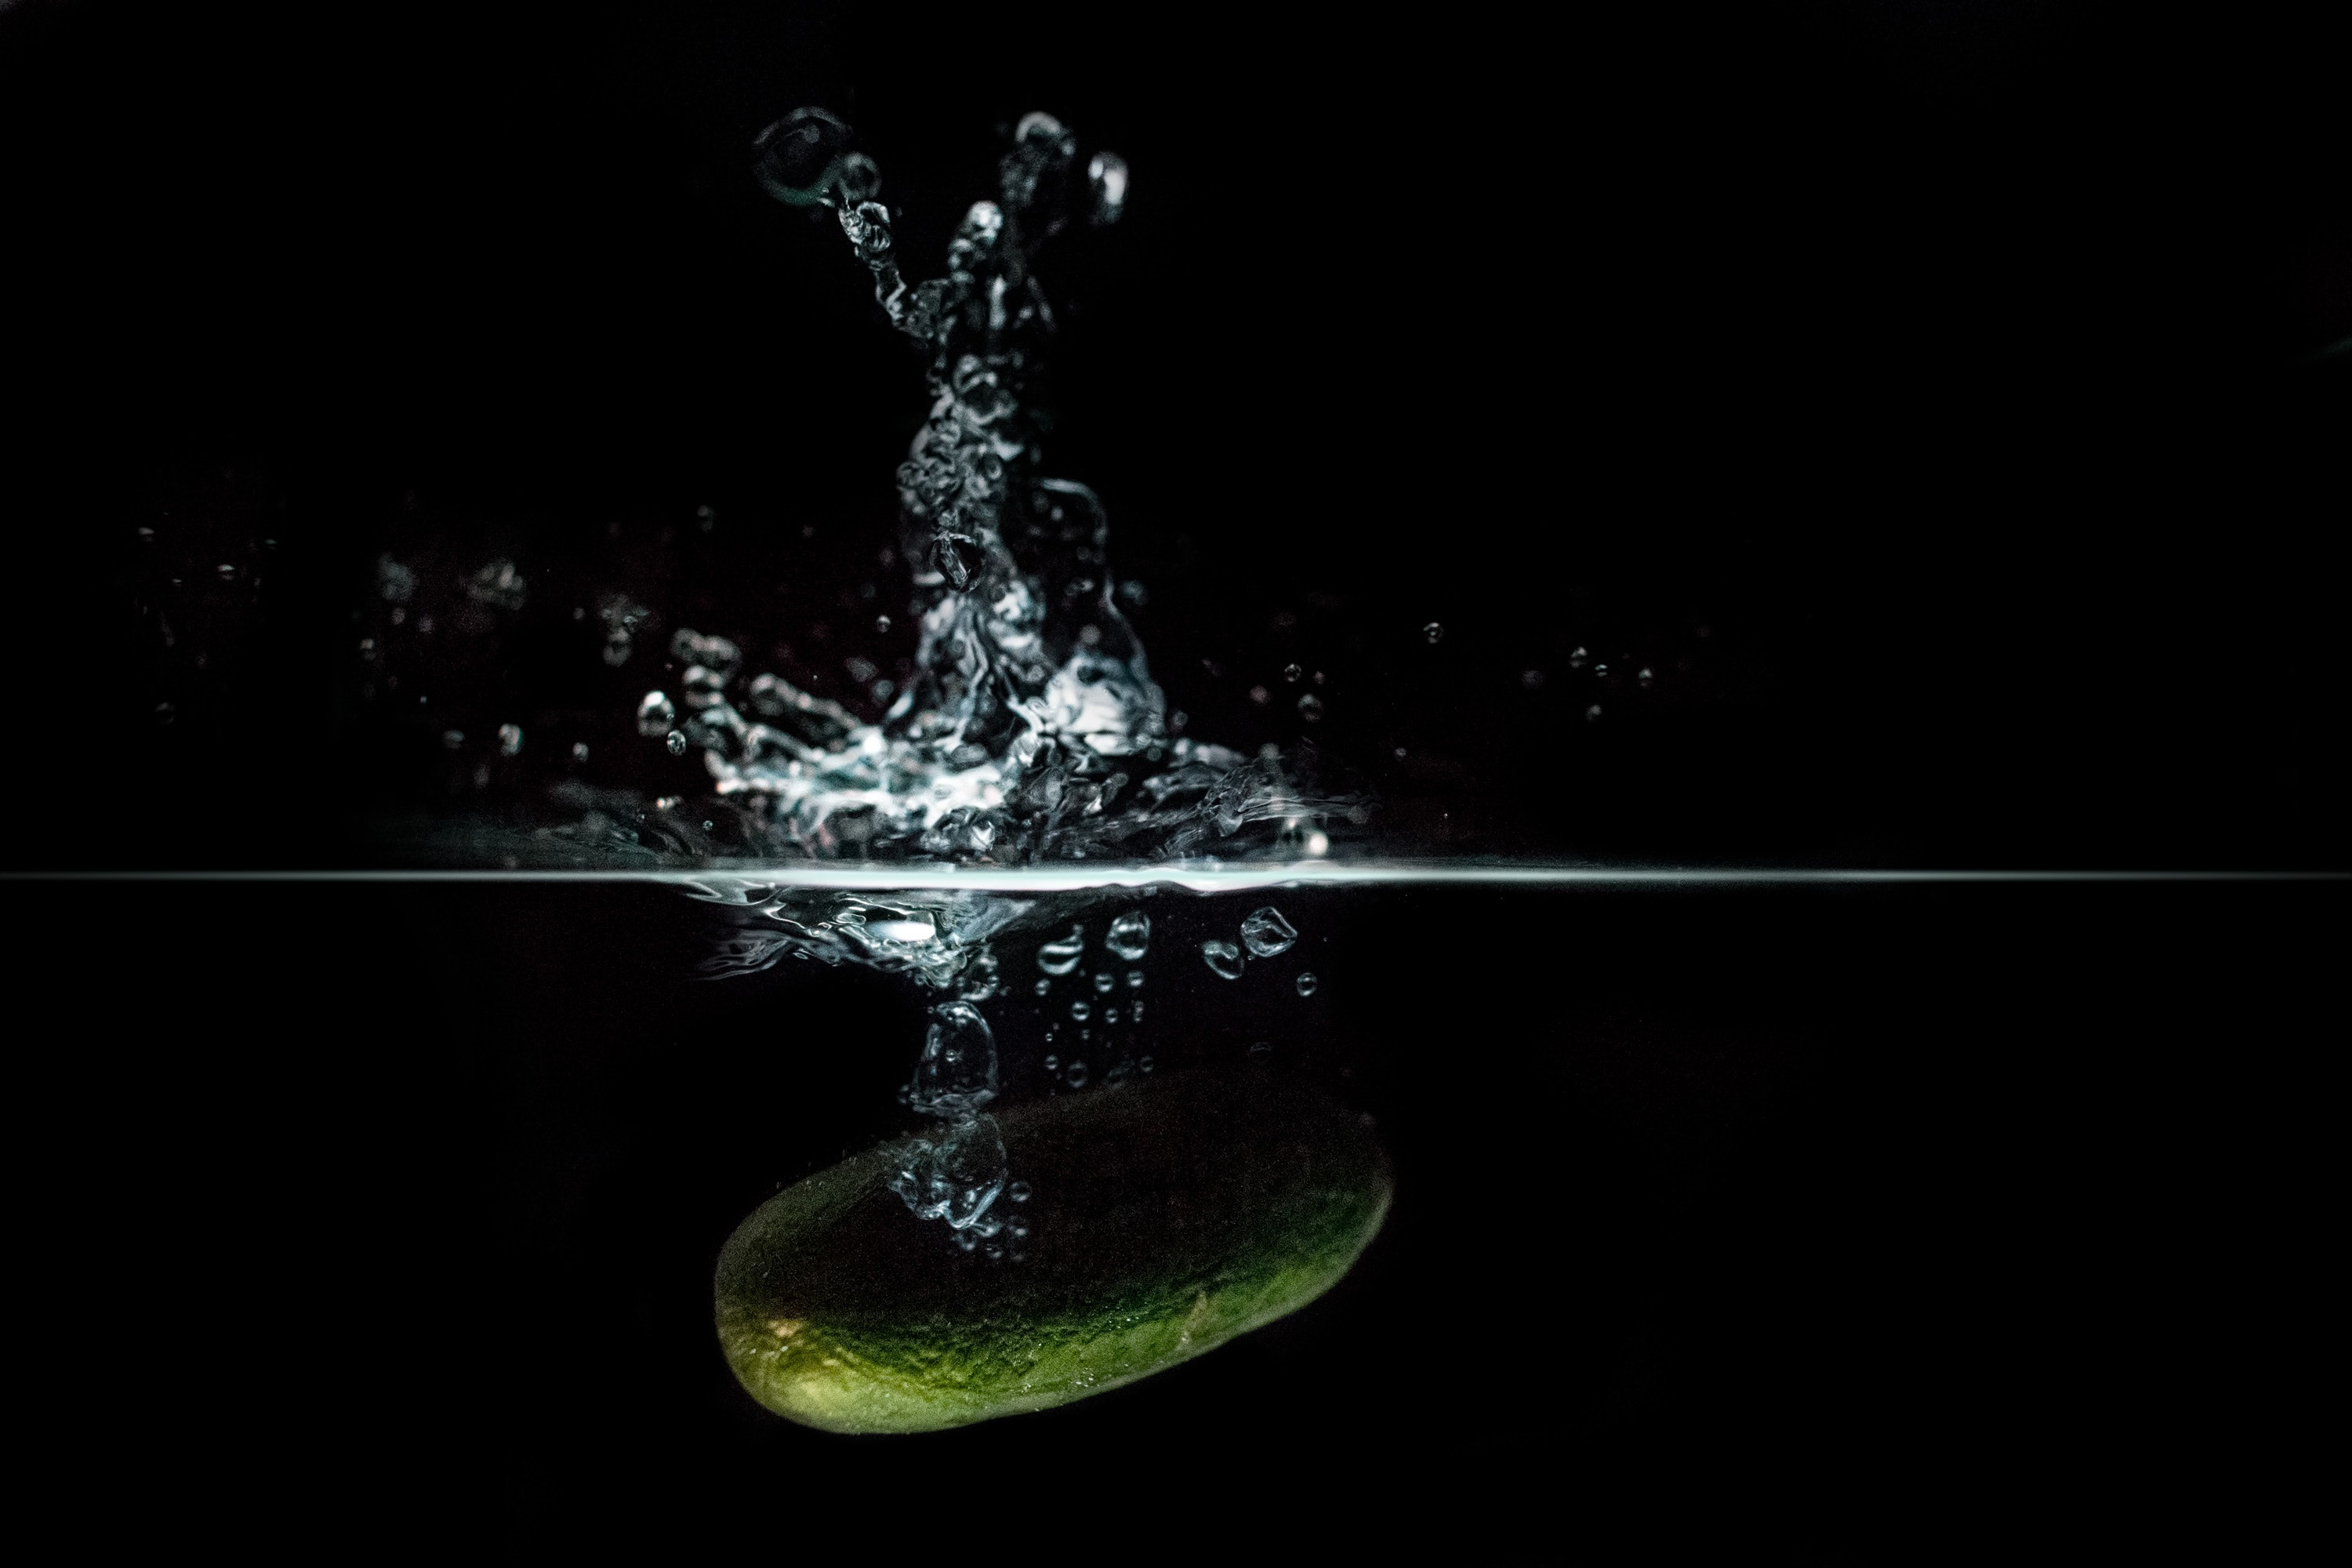 Focus photo of green vegetable dropped on water